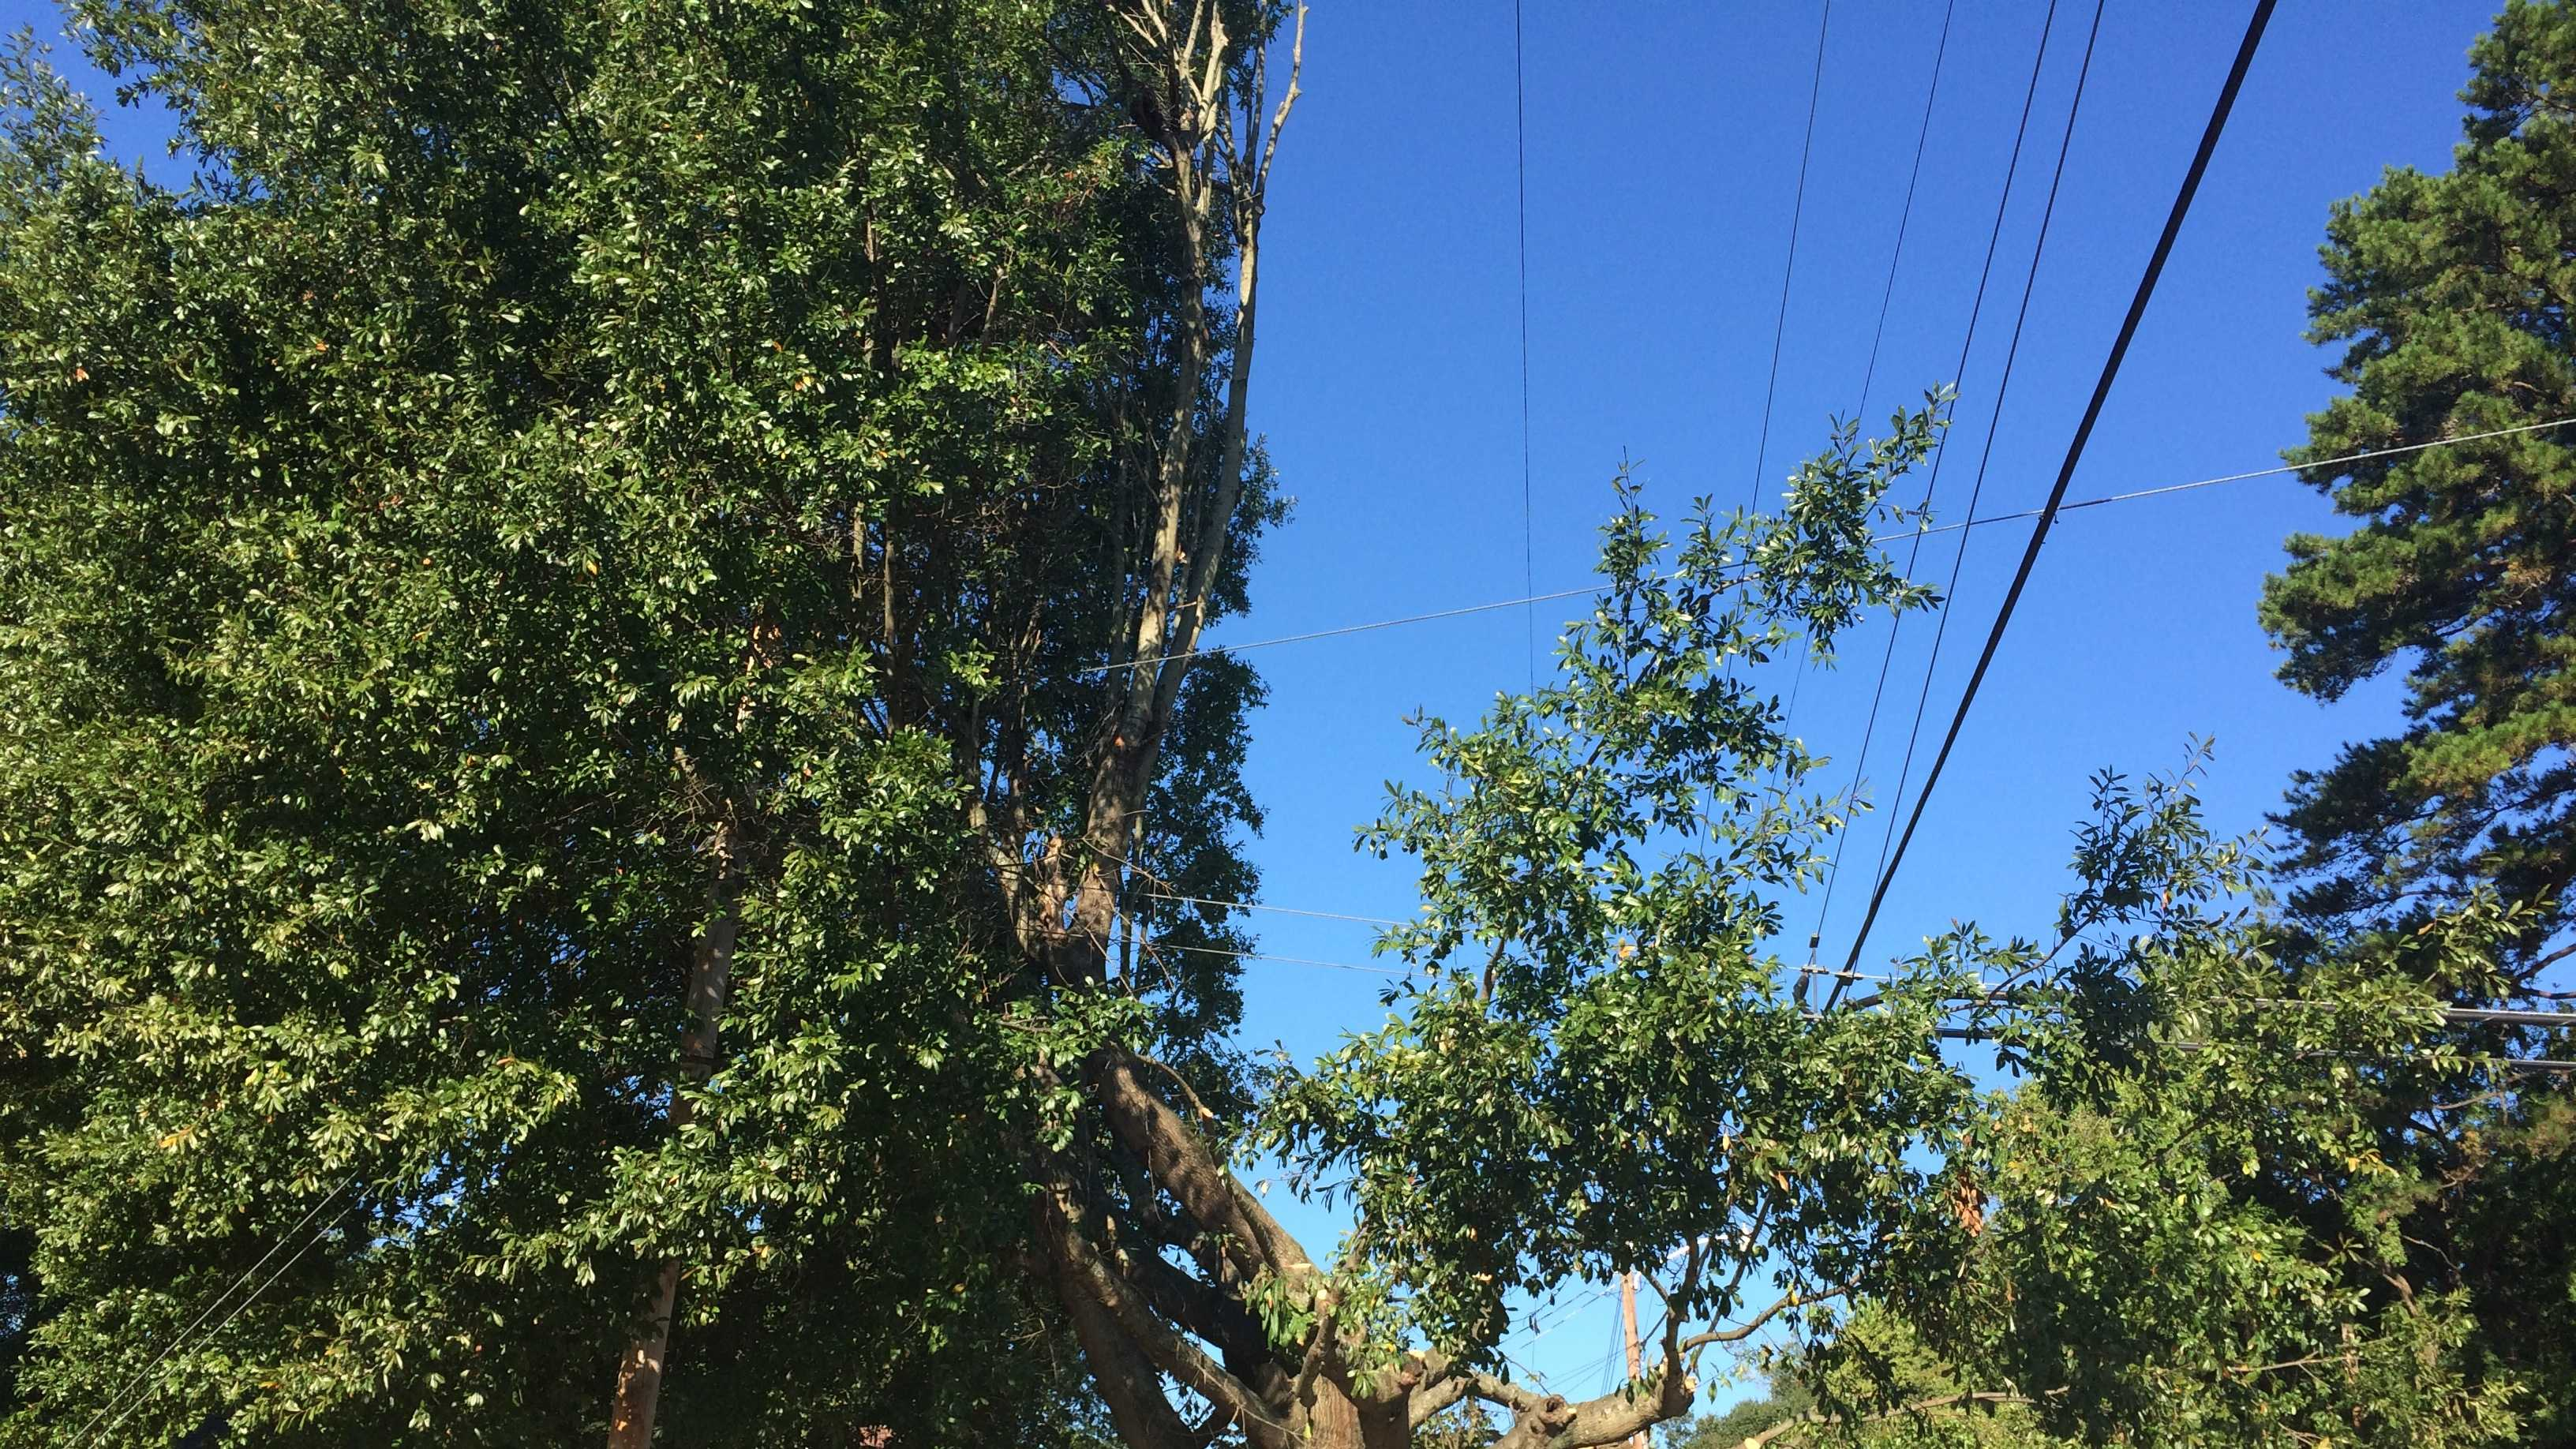 This tree on Bennett St. and Gallivan St. has had a large area trimmed to prevent it from touching the power lines.